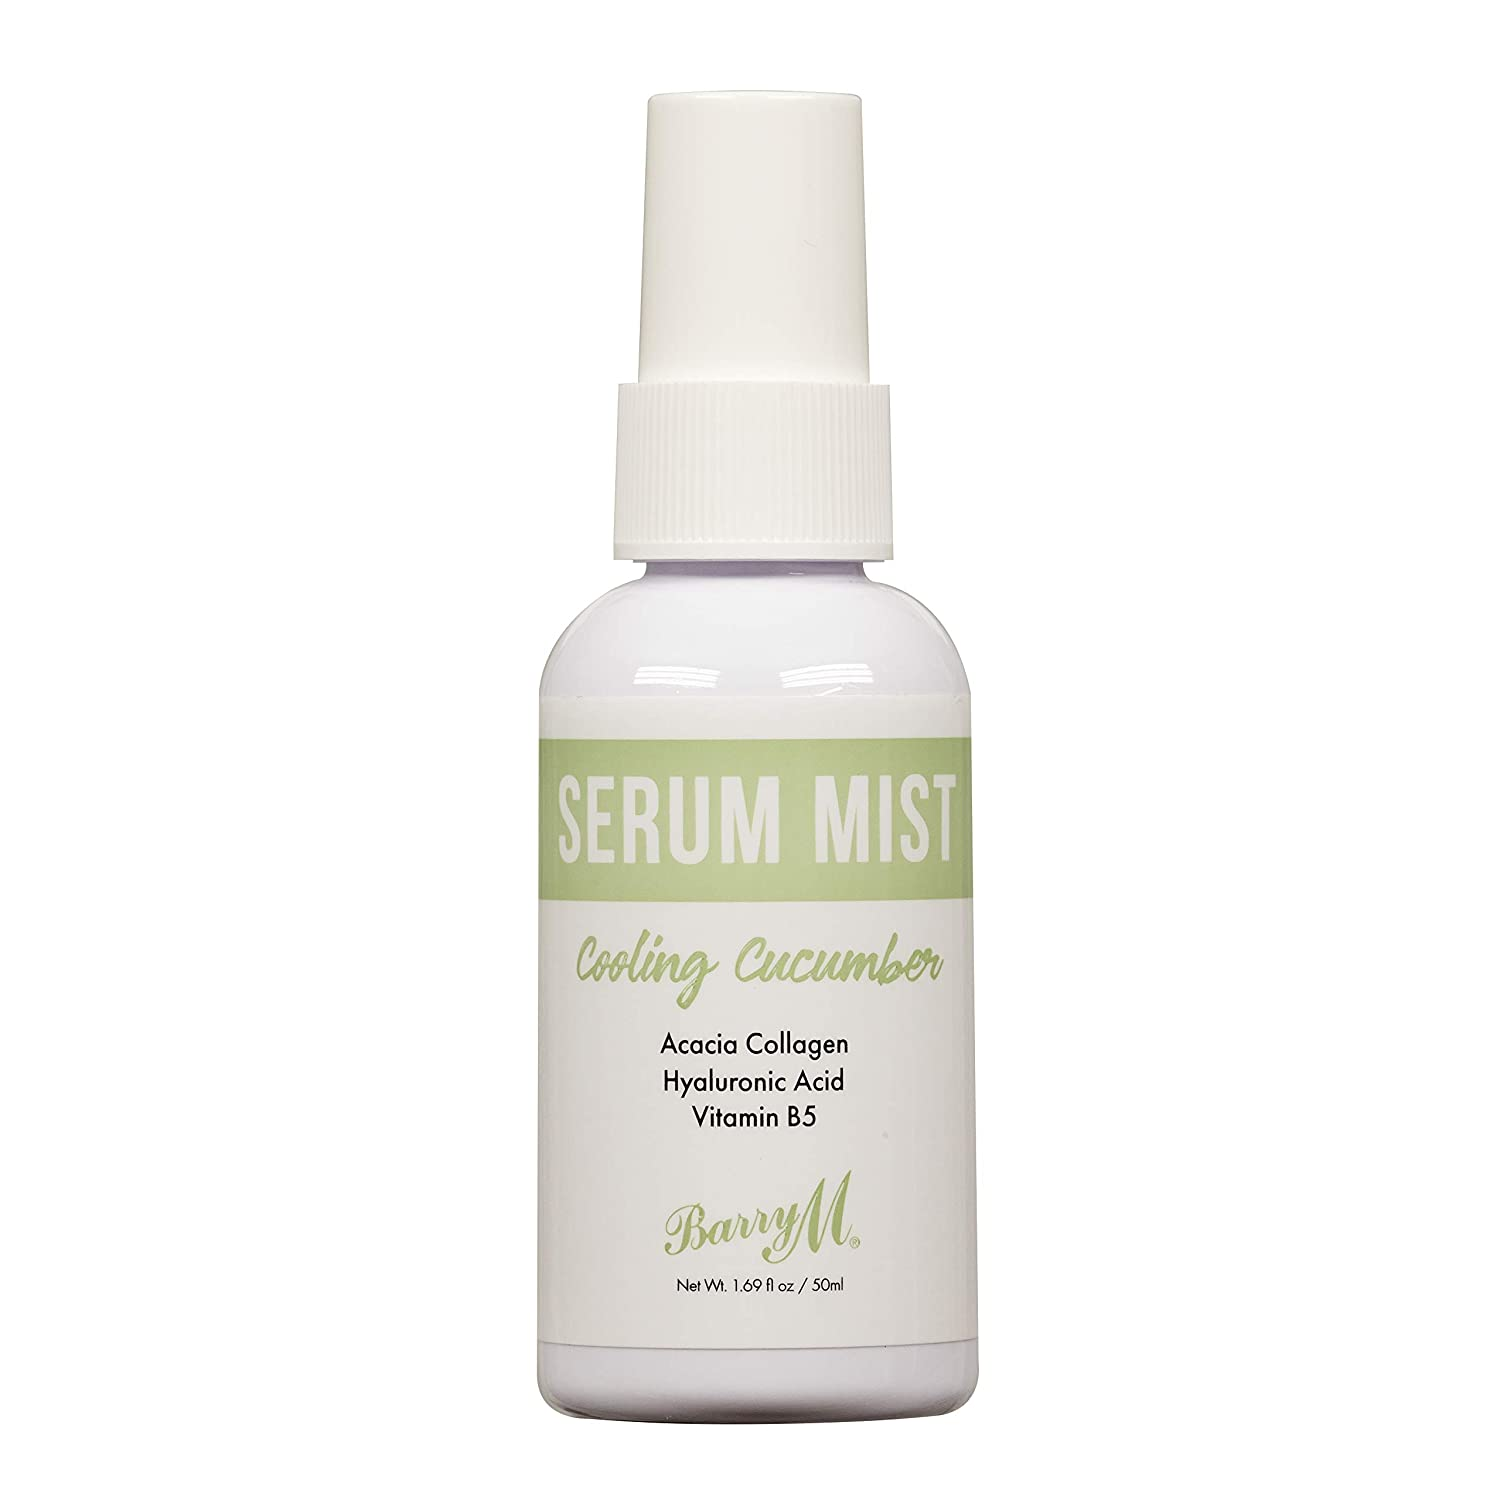 Barry M Cosmetics - Serum Hydrating Soothing Max 90% OFF Coolin and Mist Beauty products